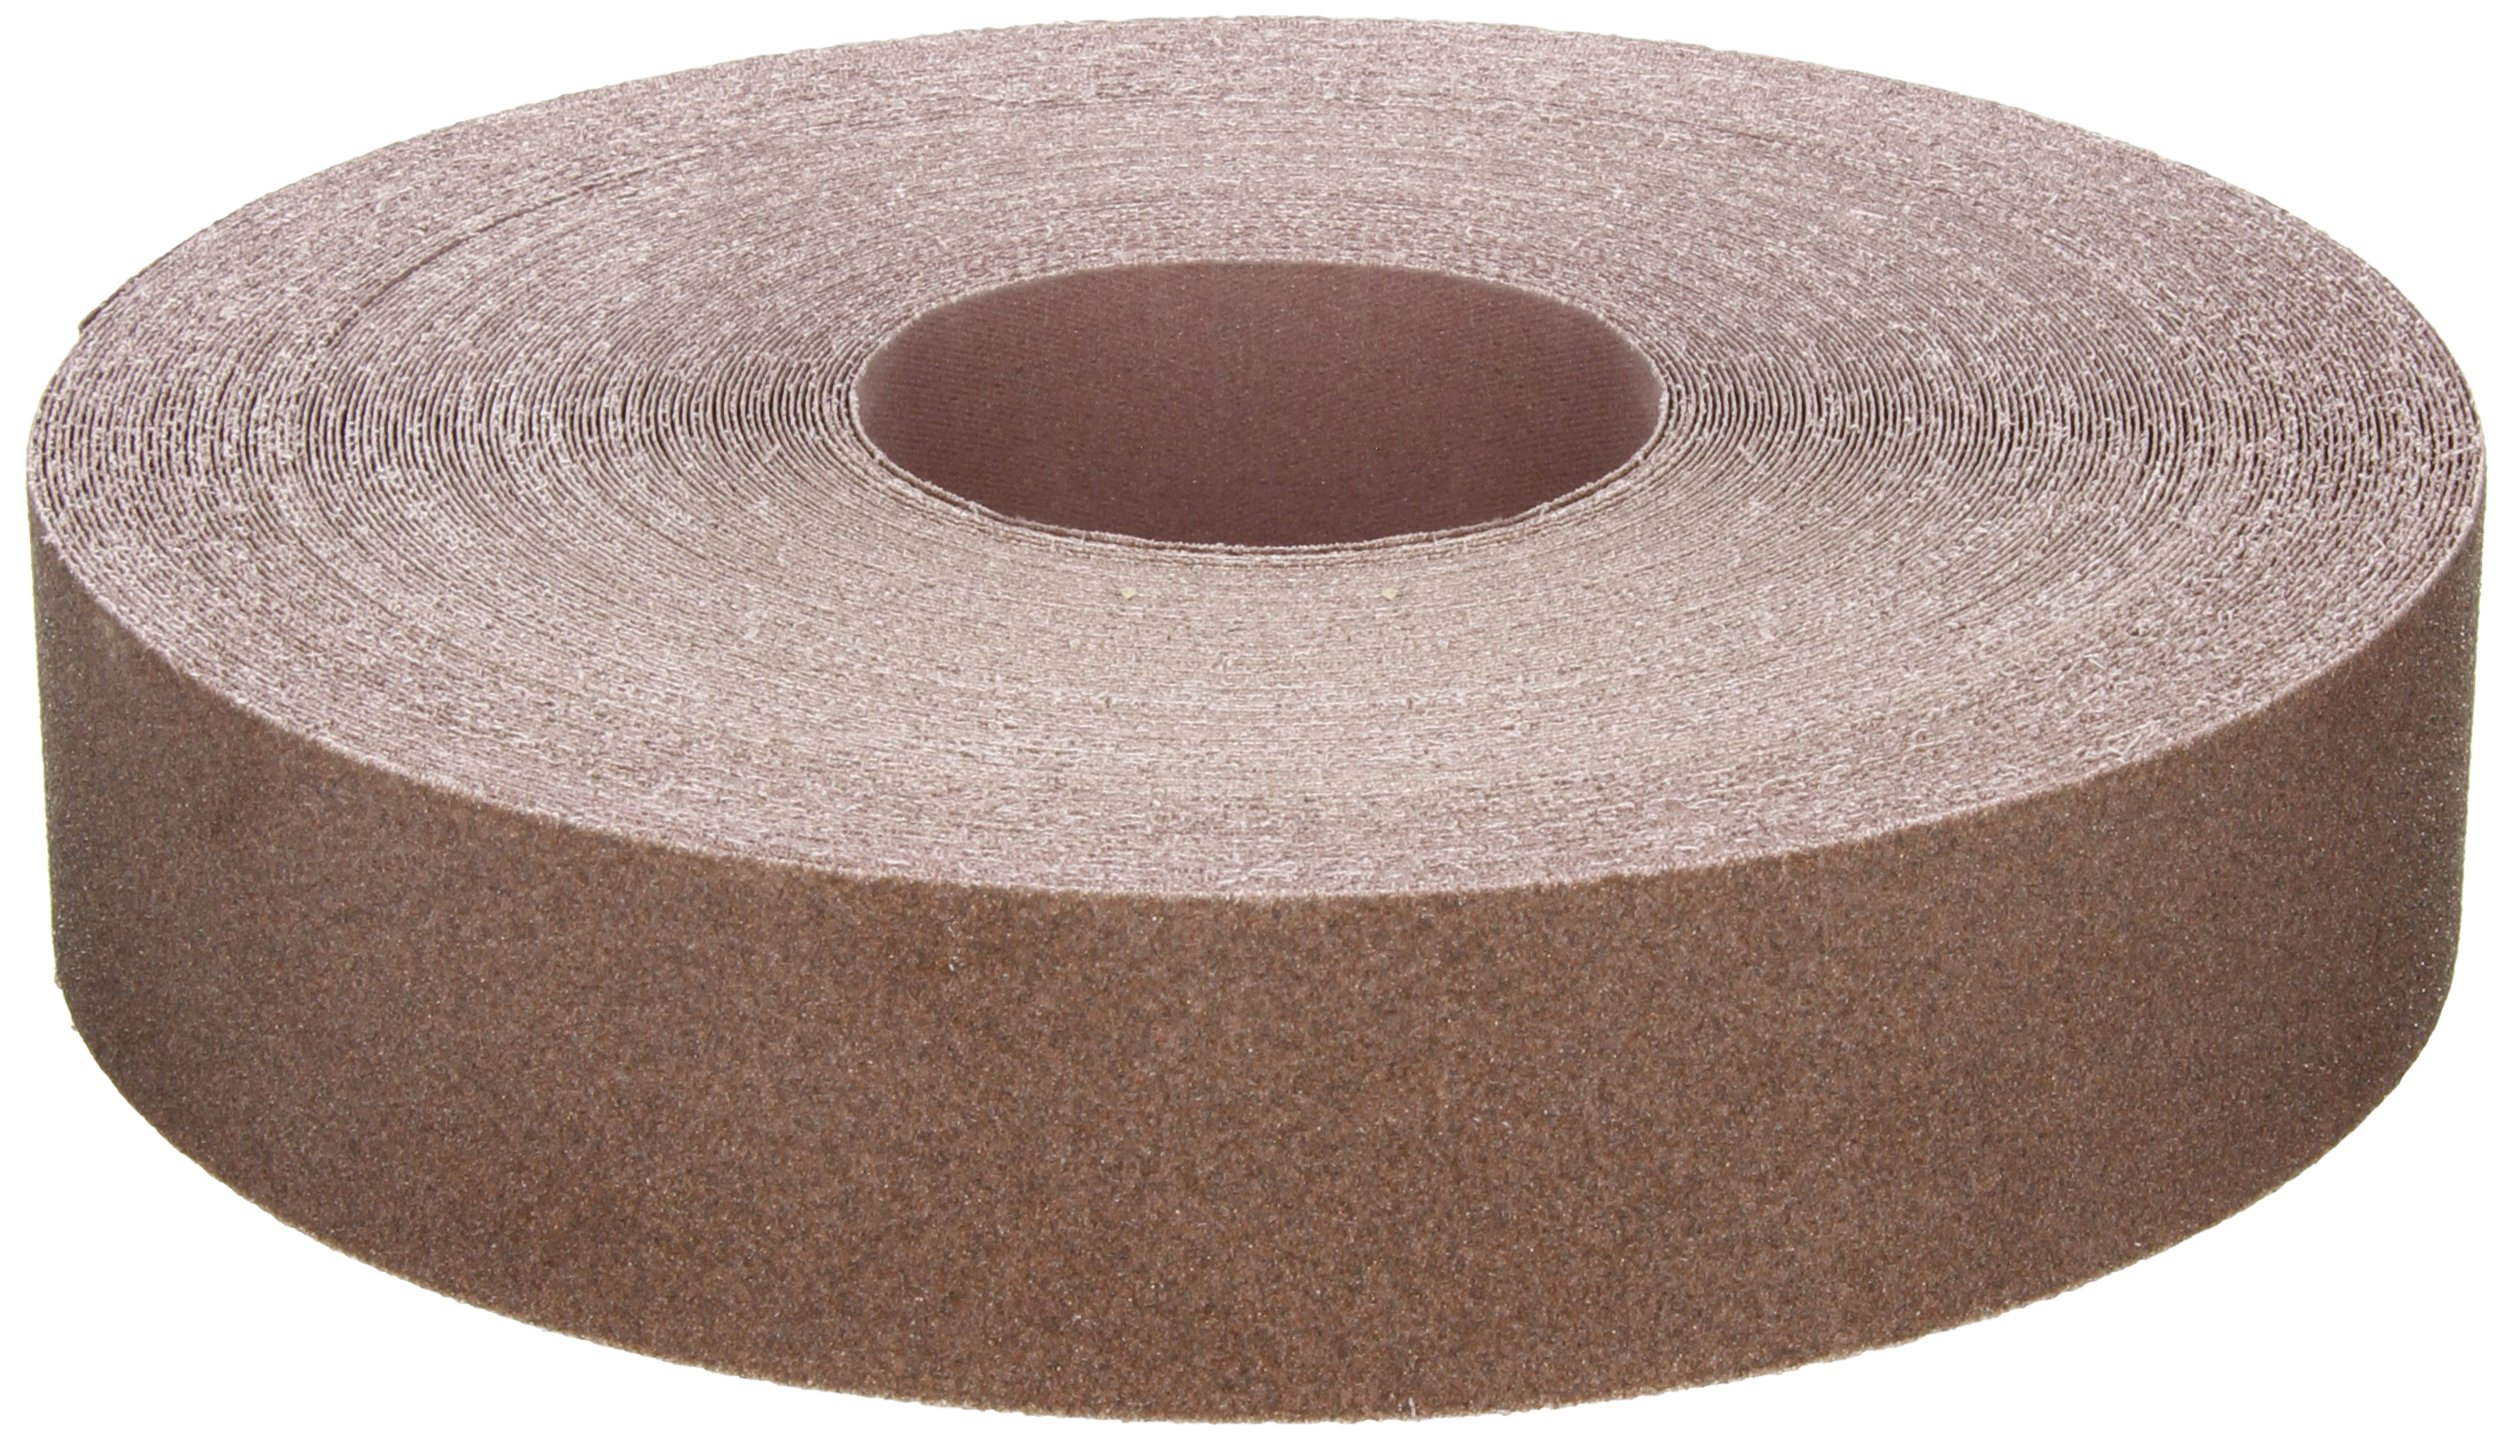 Norton K225 Metalite Abrasive Roll, Cloth Backing, Aluminum Oxide, 2'' Width x 50yd Length, Grit P80 (Pack of 5)